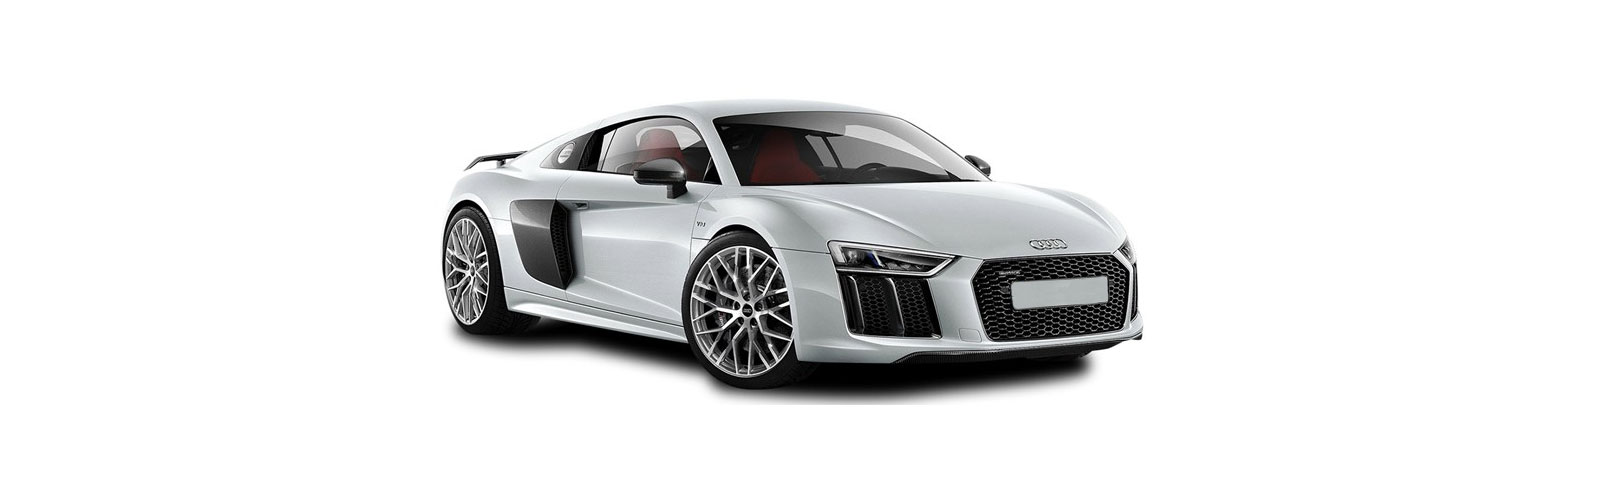 2023 Audi R8 will have a partial or an all-electric version